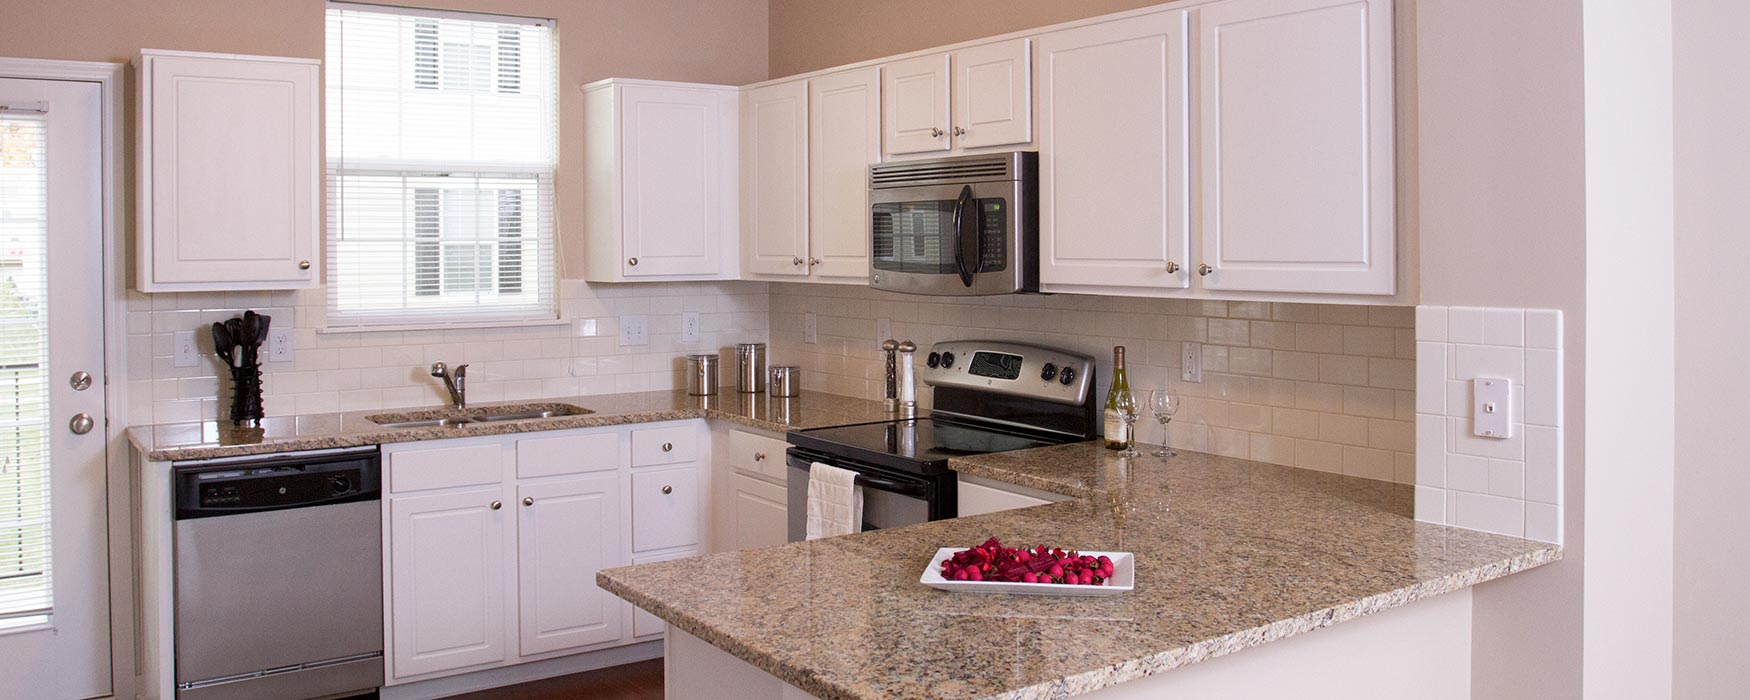 LC Preserve Crossing   Gahanna Apartments   Stansbury Plus Kitchen